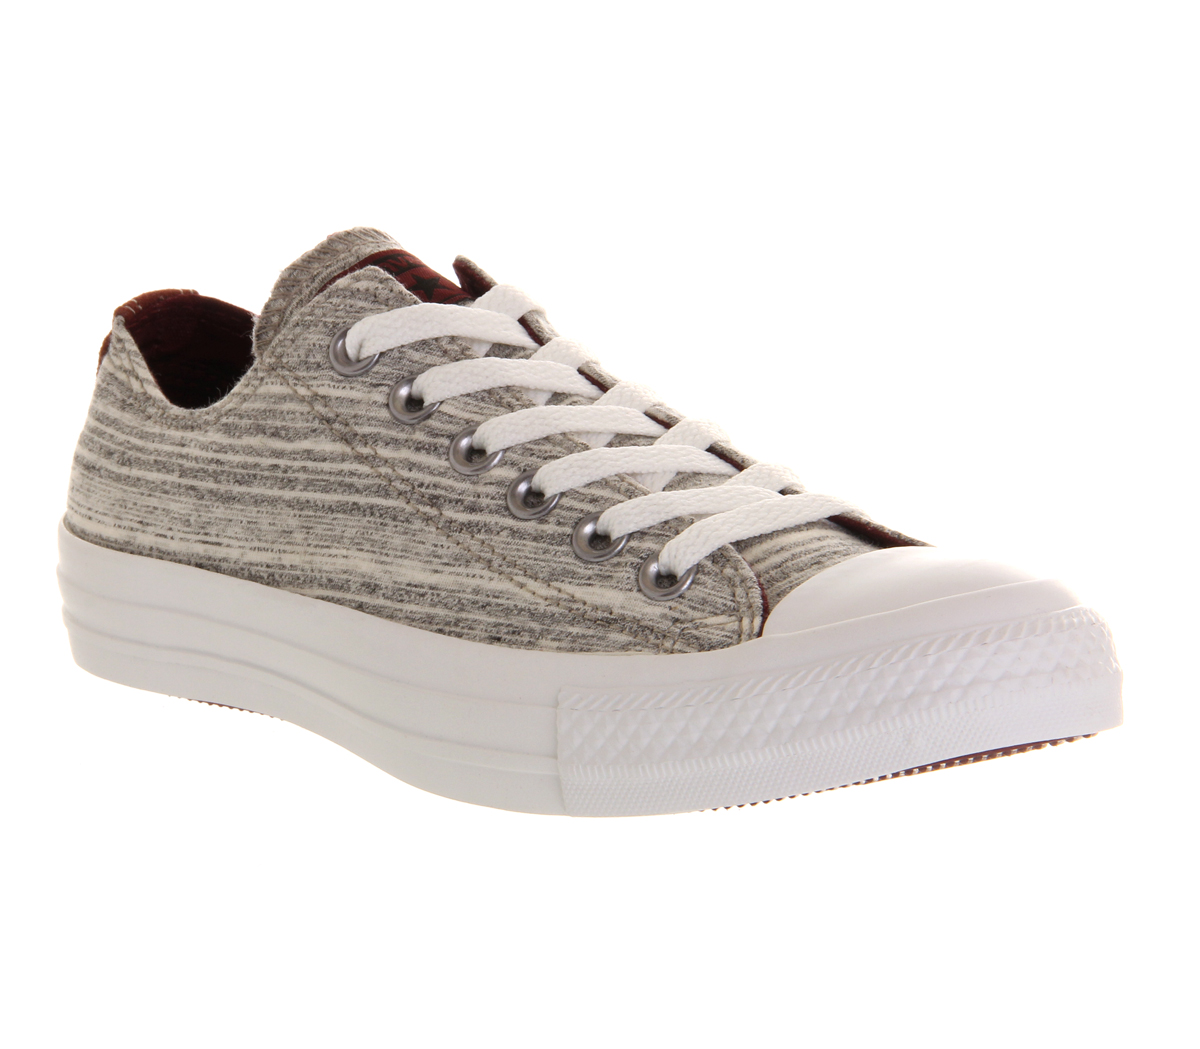 Mens-Converse-Converse-All-Star-Low-FLECKED-GREY-MARL-BURGUNDY-EXCLUSIVE-Trainer